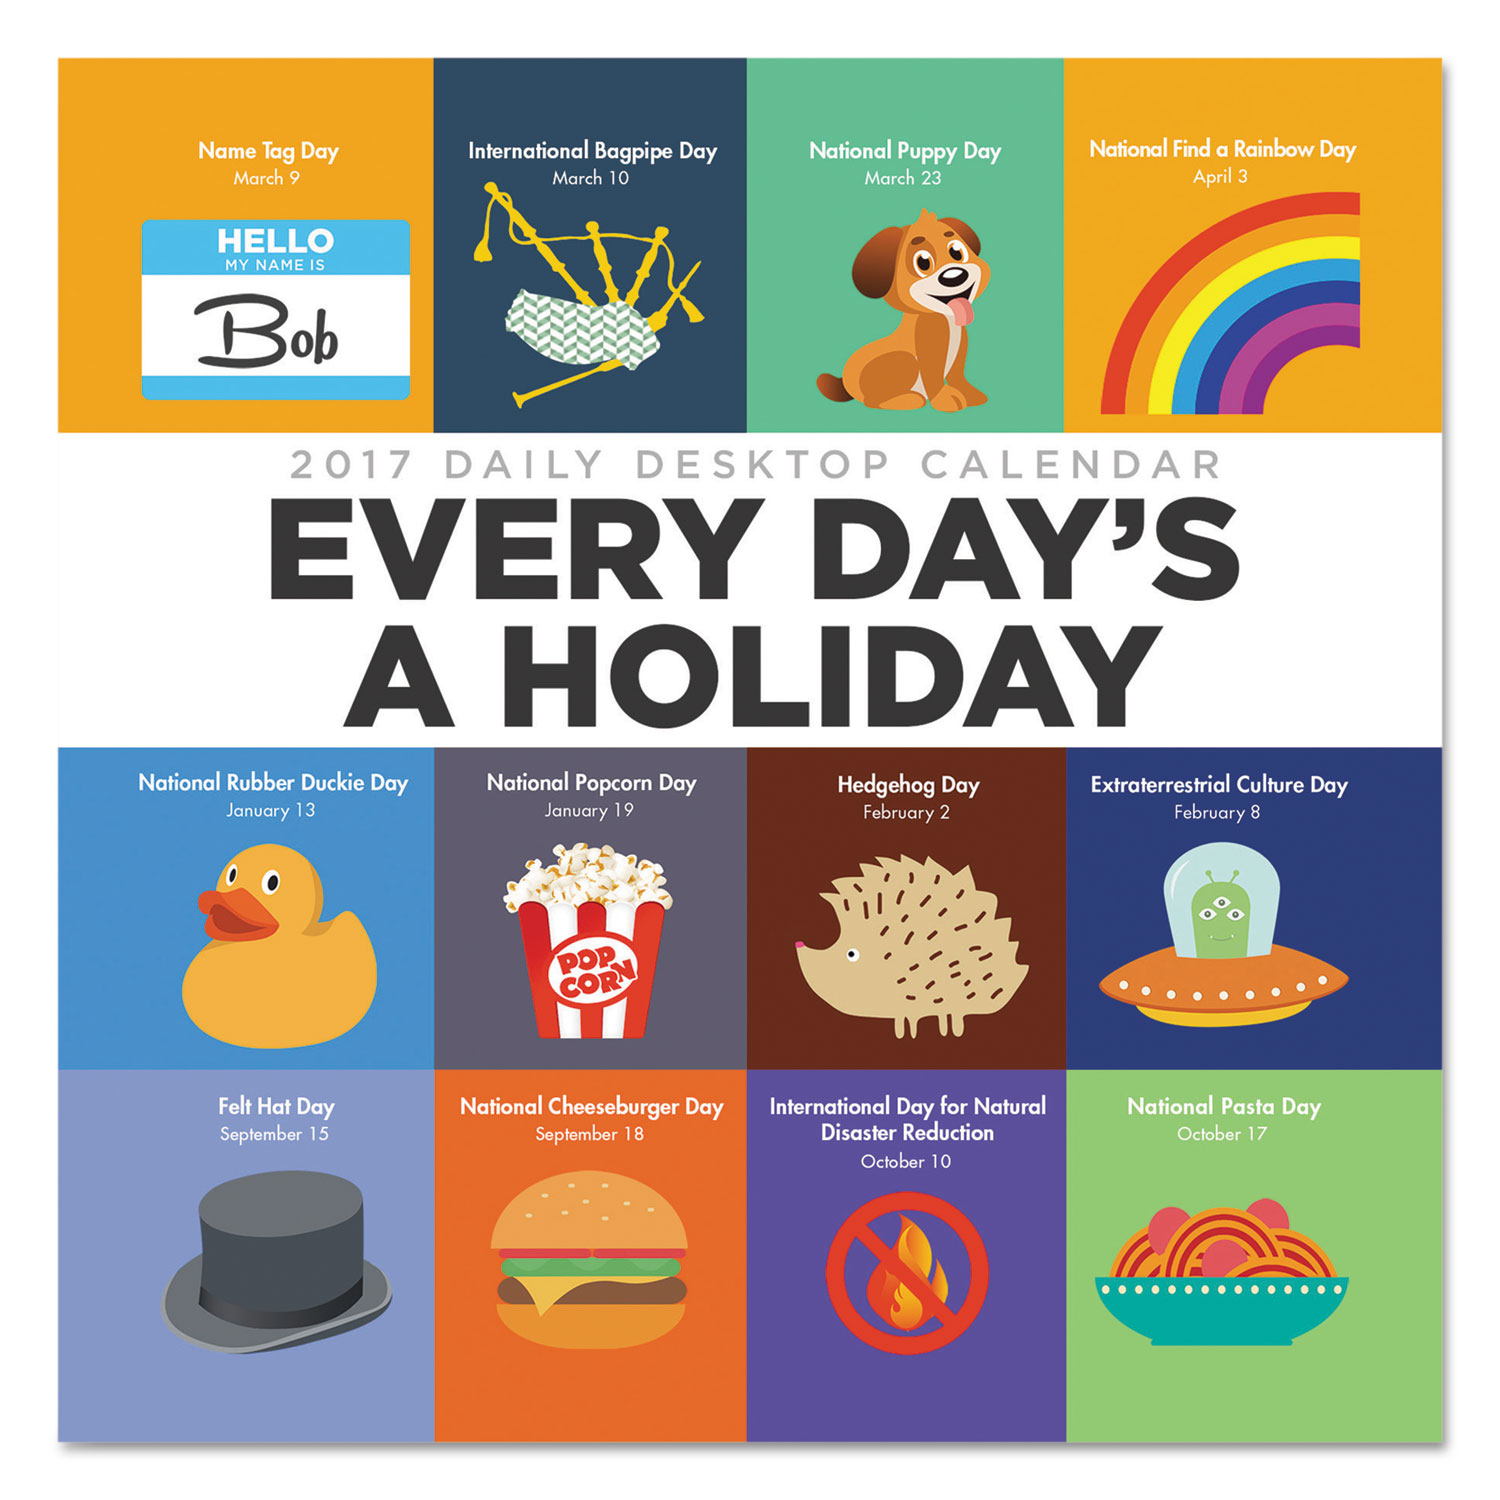 Every Day'S A Holiday Box Calendar, 5 1/2 X 5 1/2, 2017 intended for Every Day Holiday Calendar